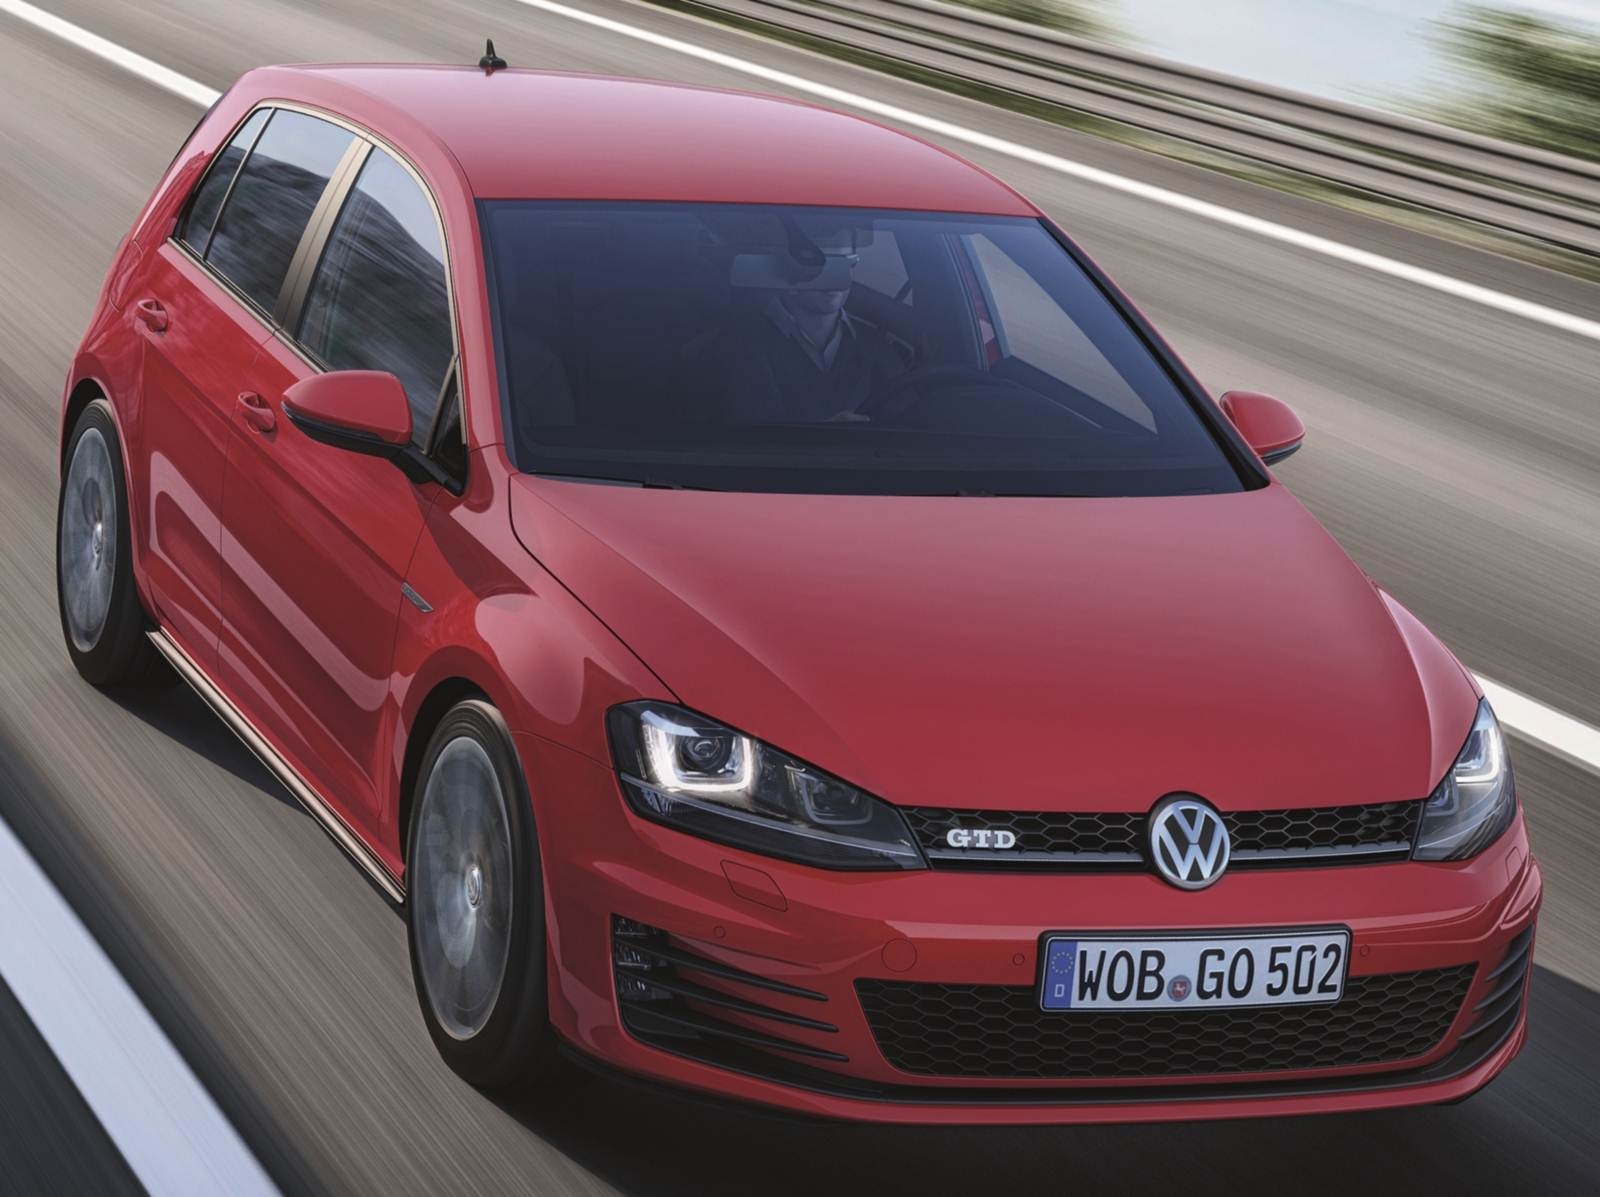 volkswagen golf 2014 gtd fotos preco e especifica es. Black Bedroom Furniture Sets. Home Design Ideas